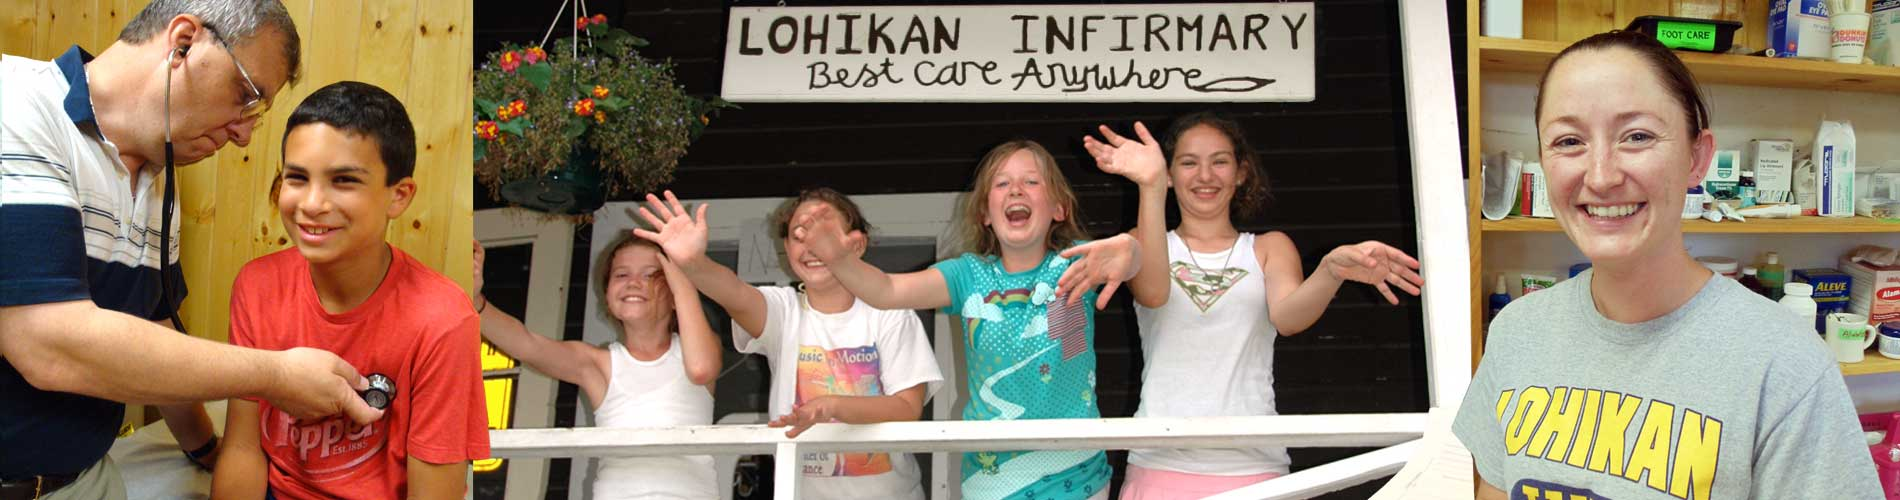 Camp Nurses at Lohikan Counselors